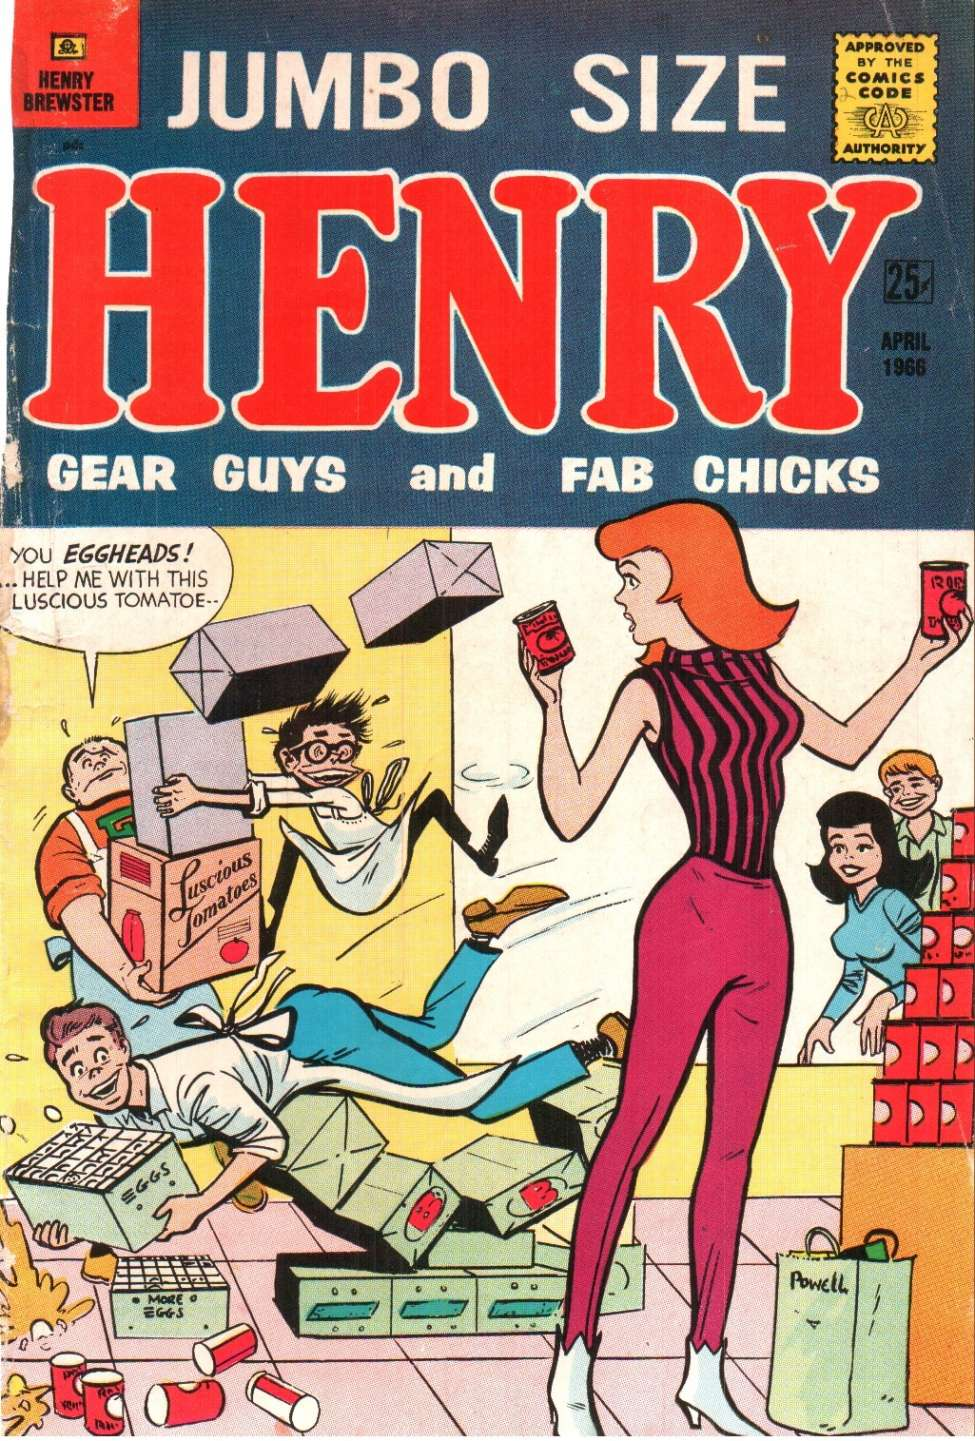 Comic Book Cover For Henry Brewster 2